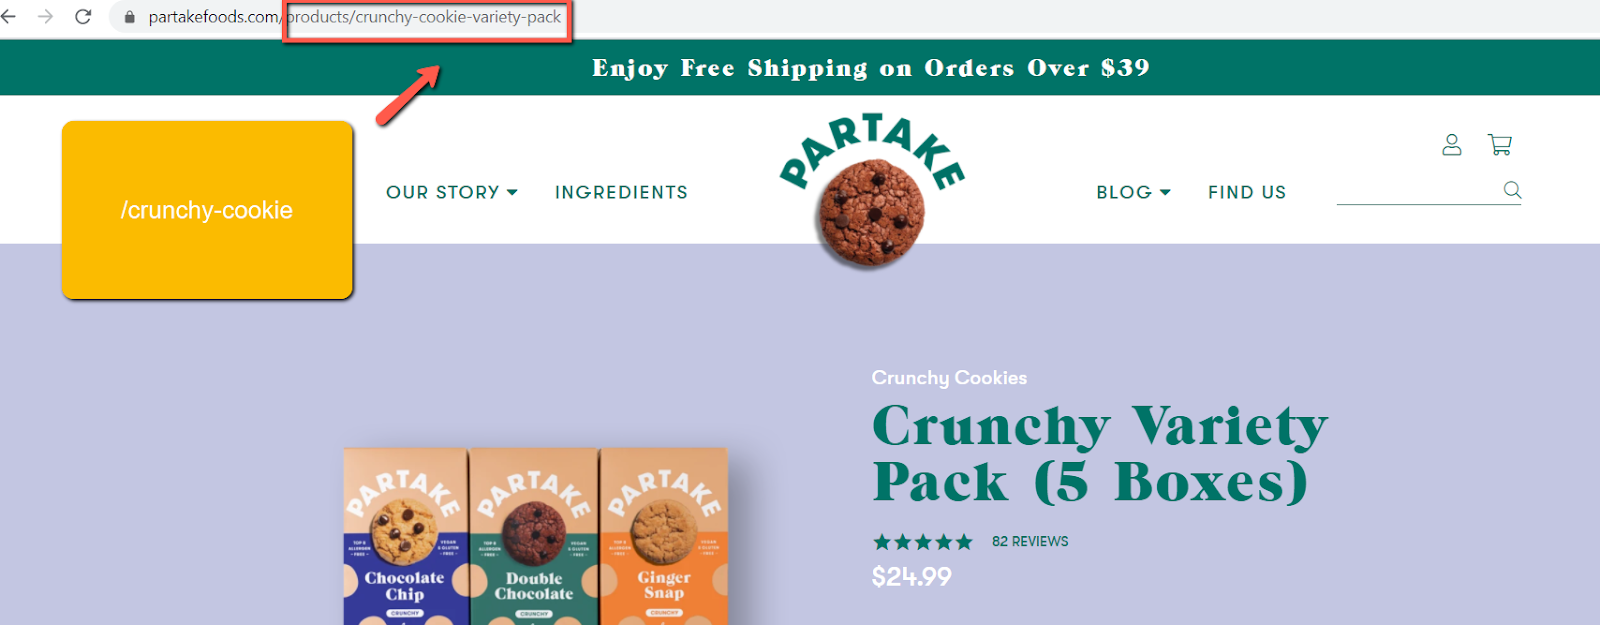 partakefoods page url example